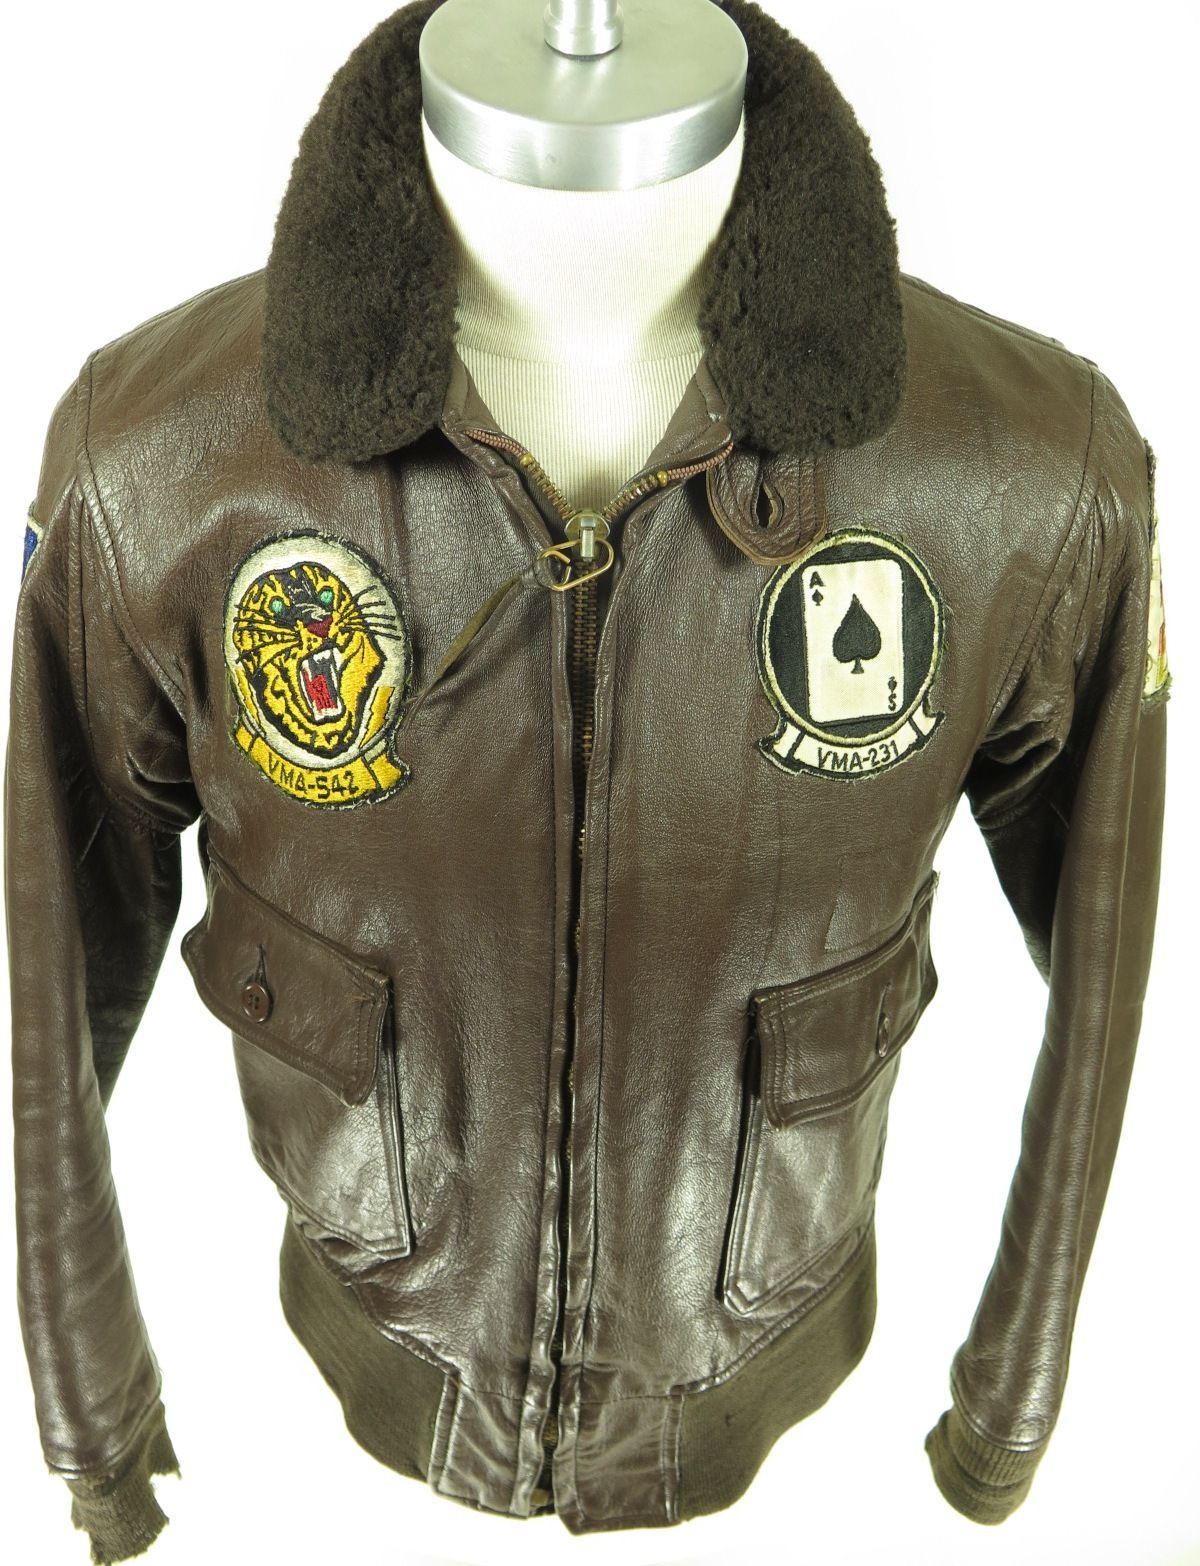 30cf40c071f Vintage Brill Bros 1973 Vietnam Type B1 leather flight bomber jacket.  Marine group combat training